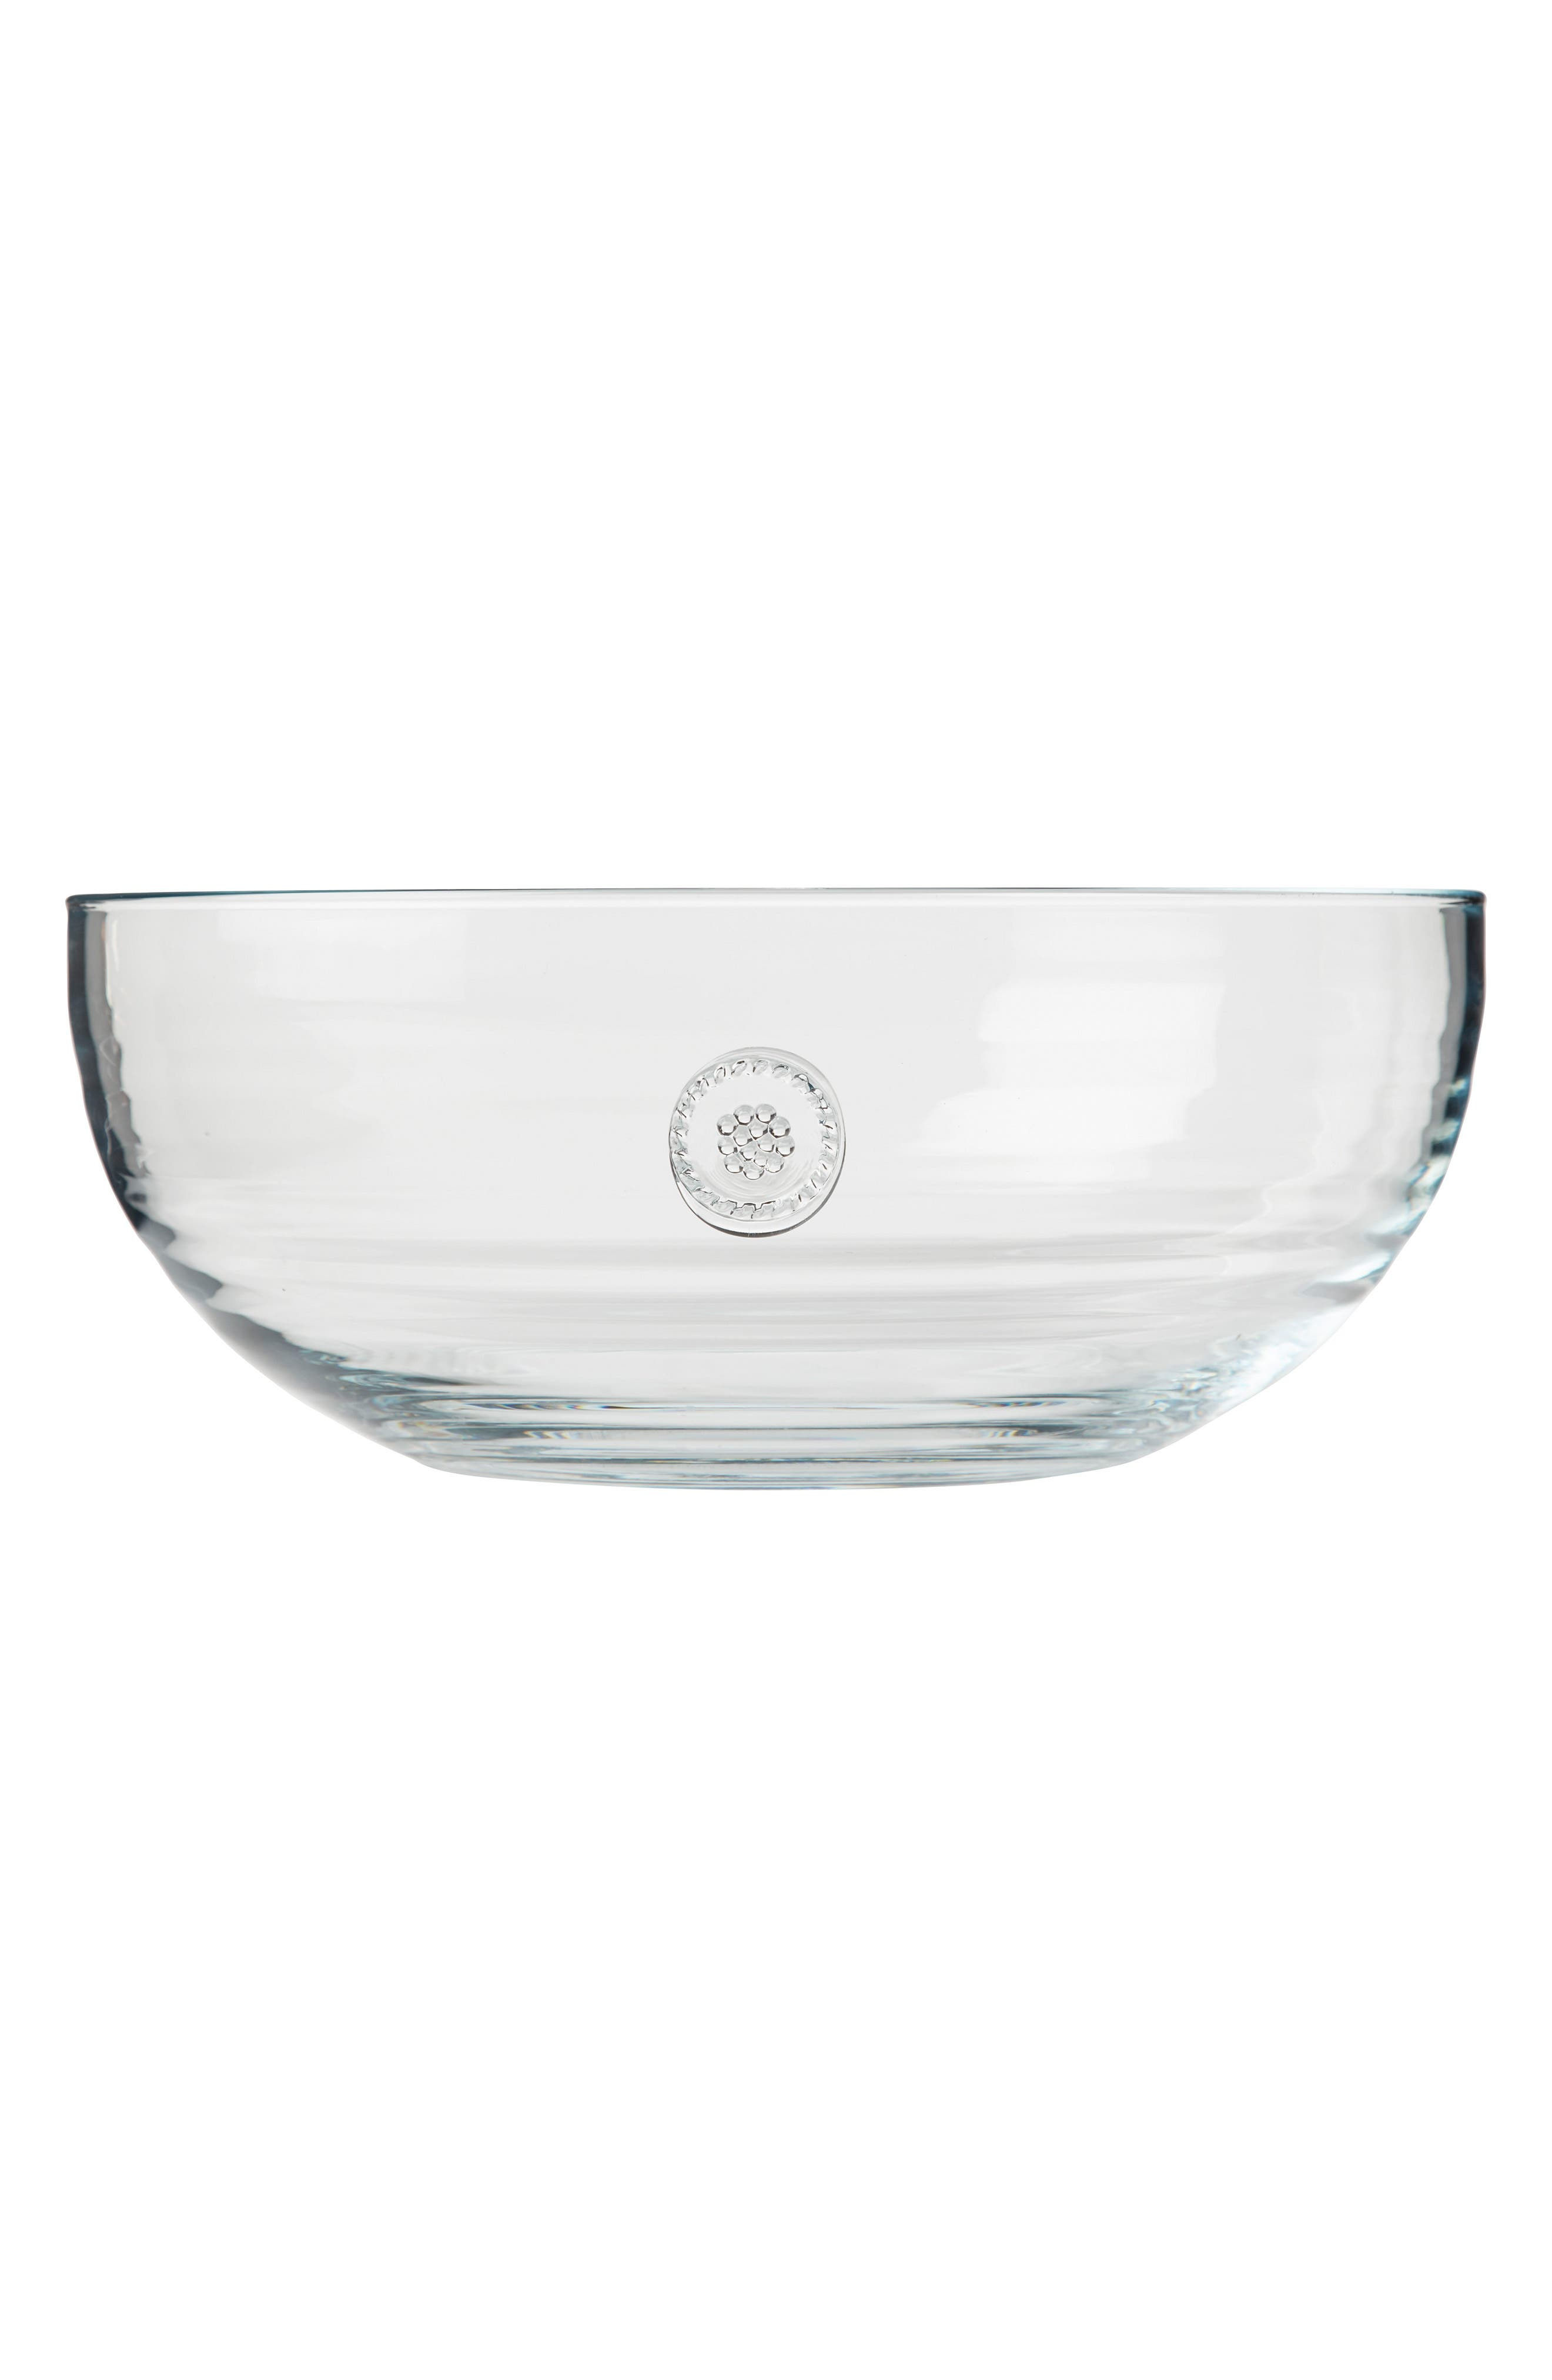 Berry & Thread Large Glass Bowl,                             Alternate thumbnail 2, color,                             CLEAR